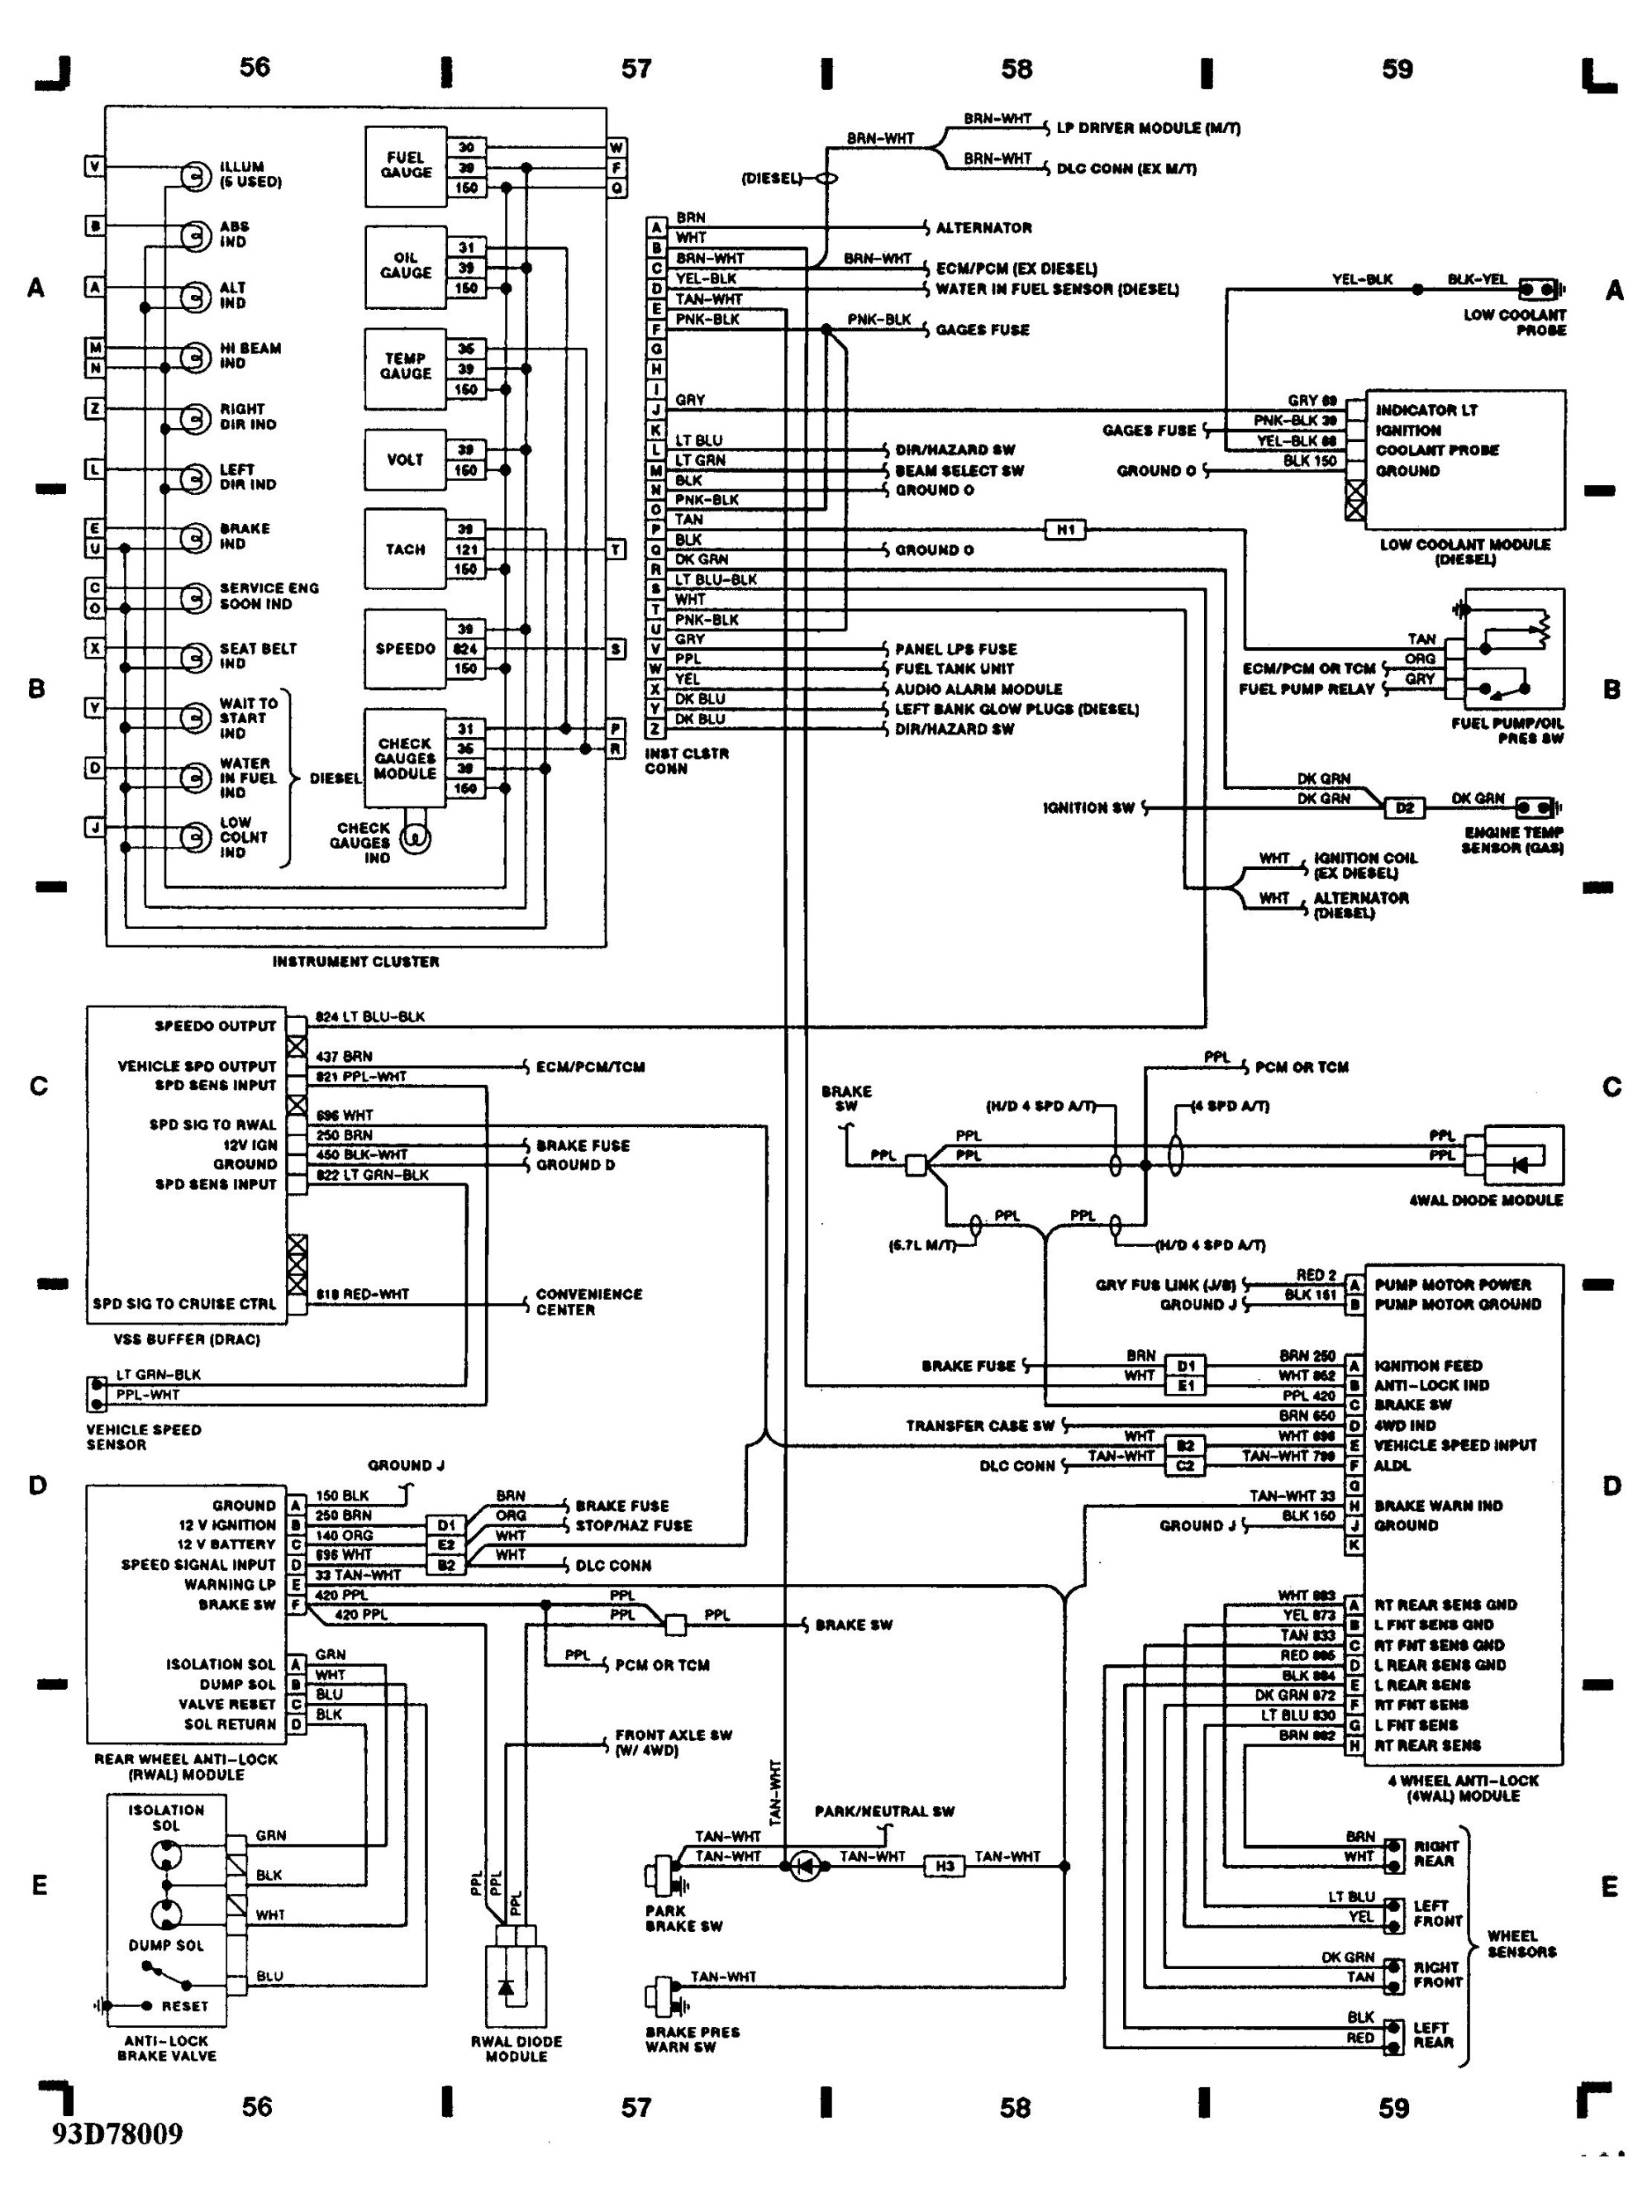 hight resolution of chevy malibu engine diagram 1997 malibu 3 1 liter chevy enginechevy 3 1 engine diagram 1991